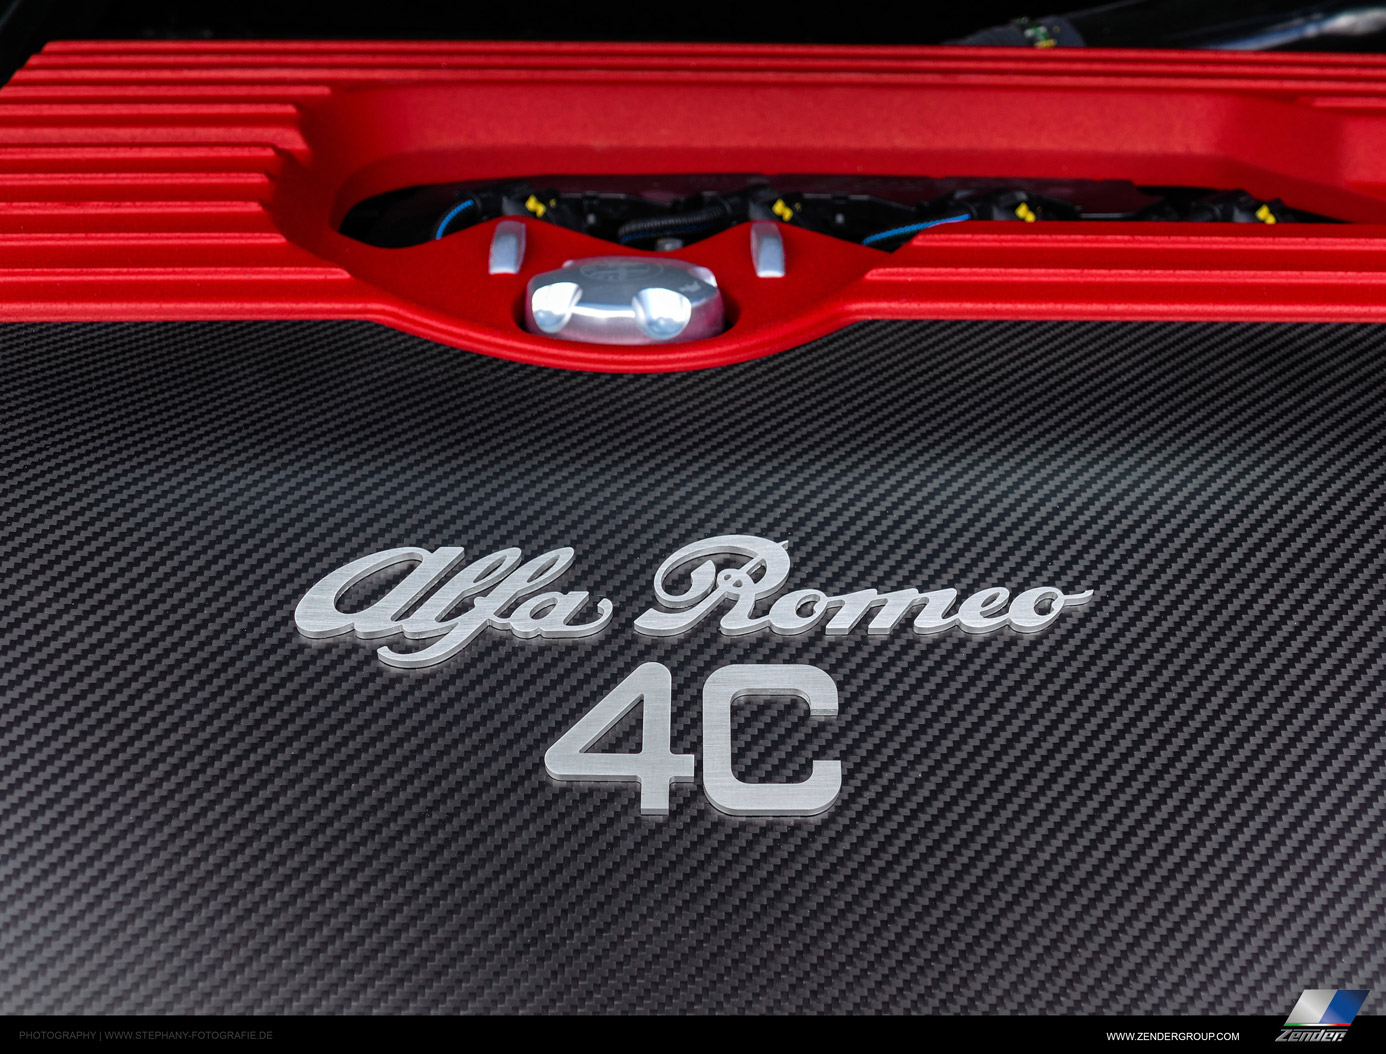 This Tuned Alfa Romeo Might Be The Sexiest Ever 4c Engine Diagram Zender 18